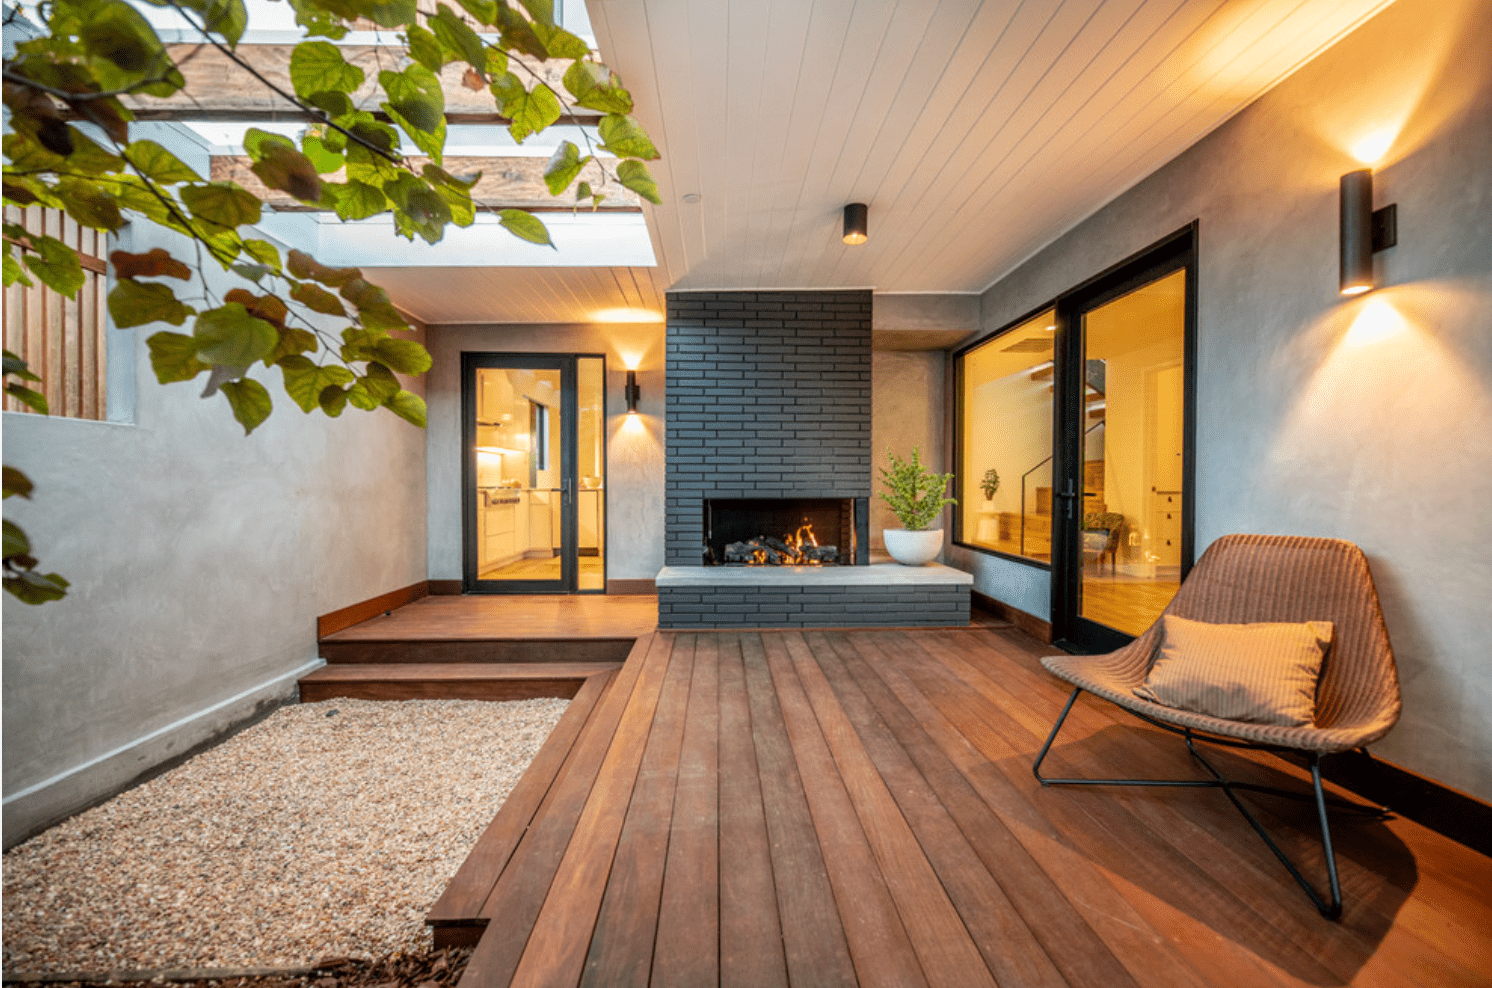 A wood-lined patio, adorned with a black brick-lined fireplace